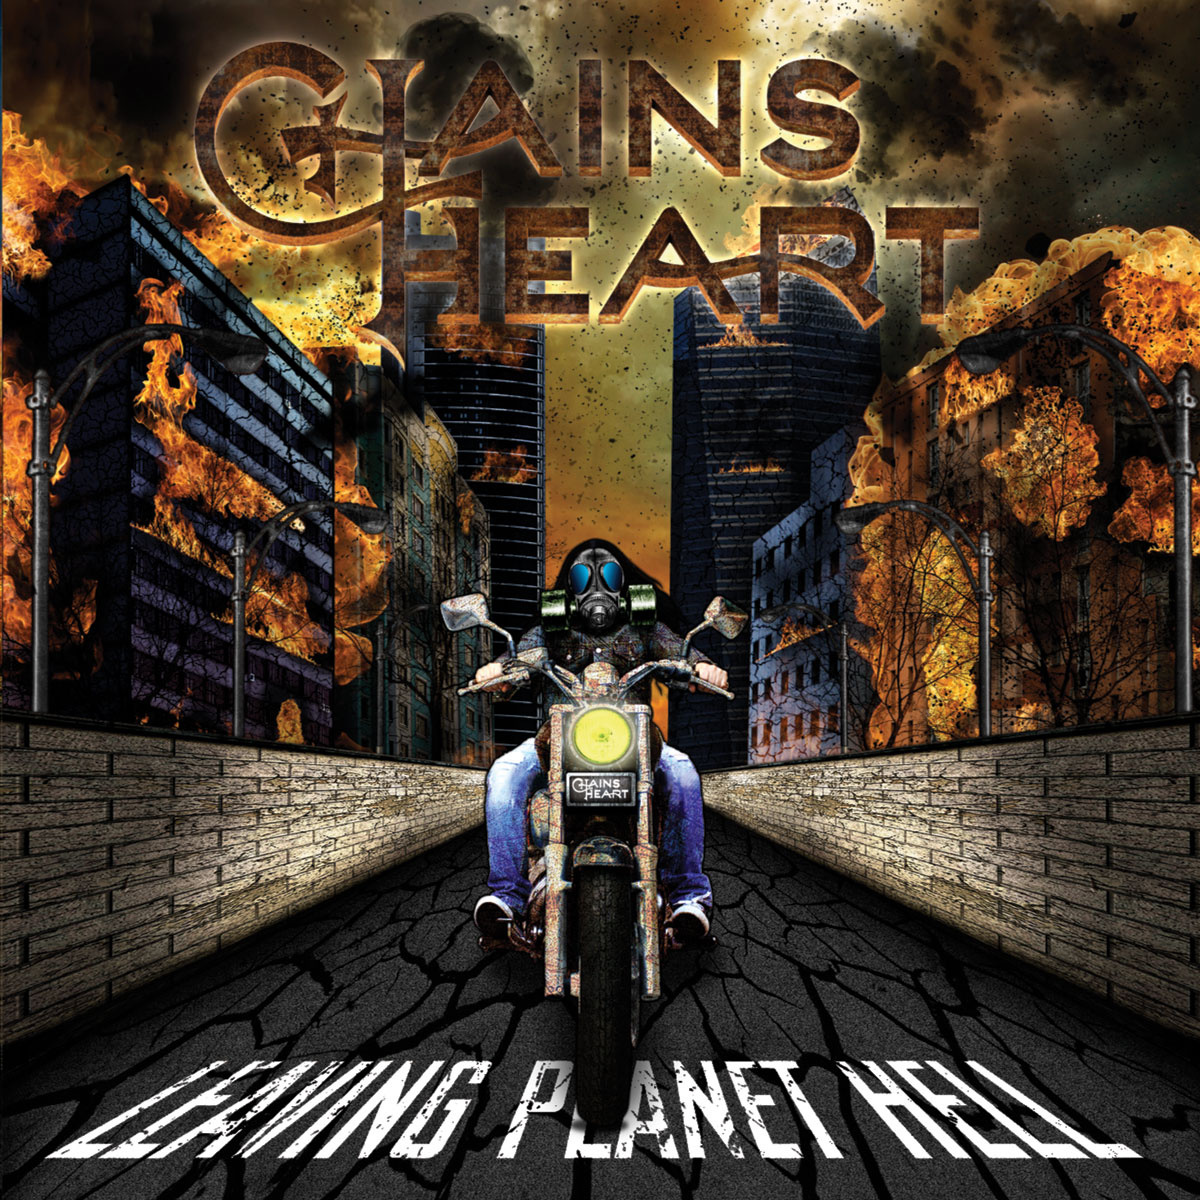 Chainsheart – Leaving Planet Hell